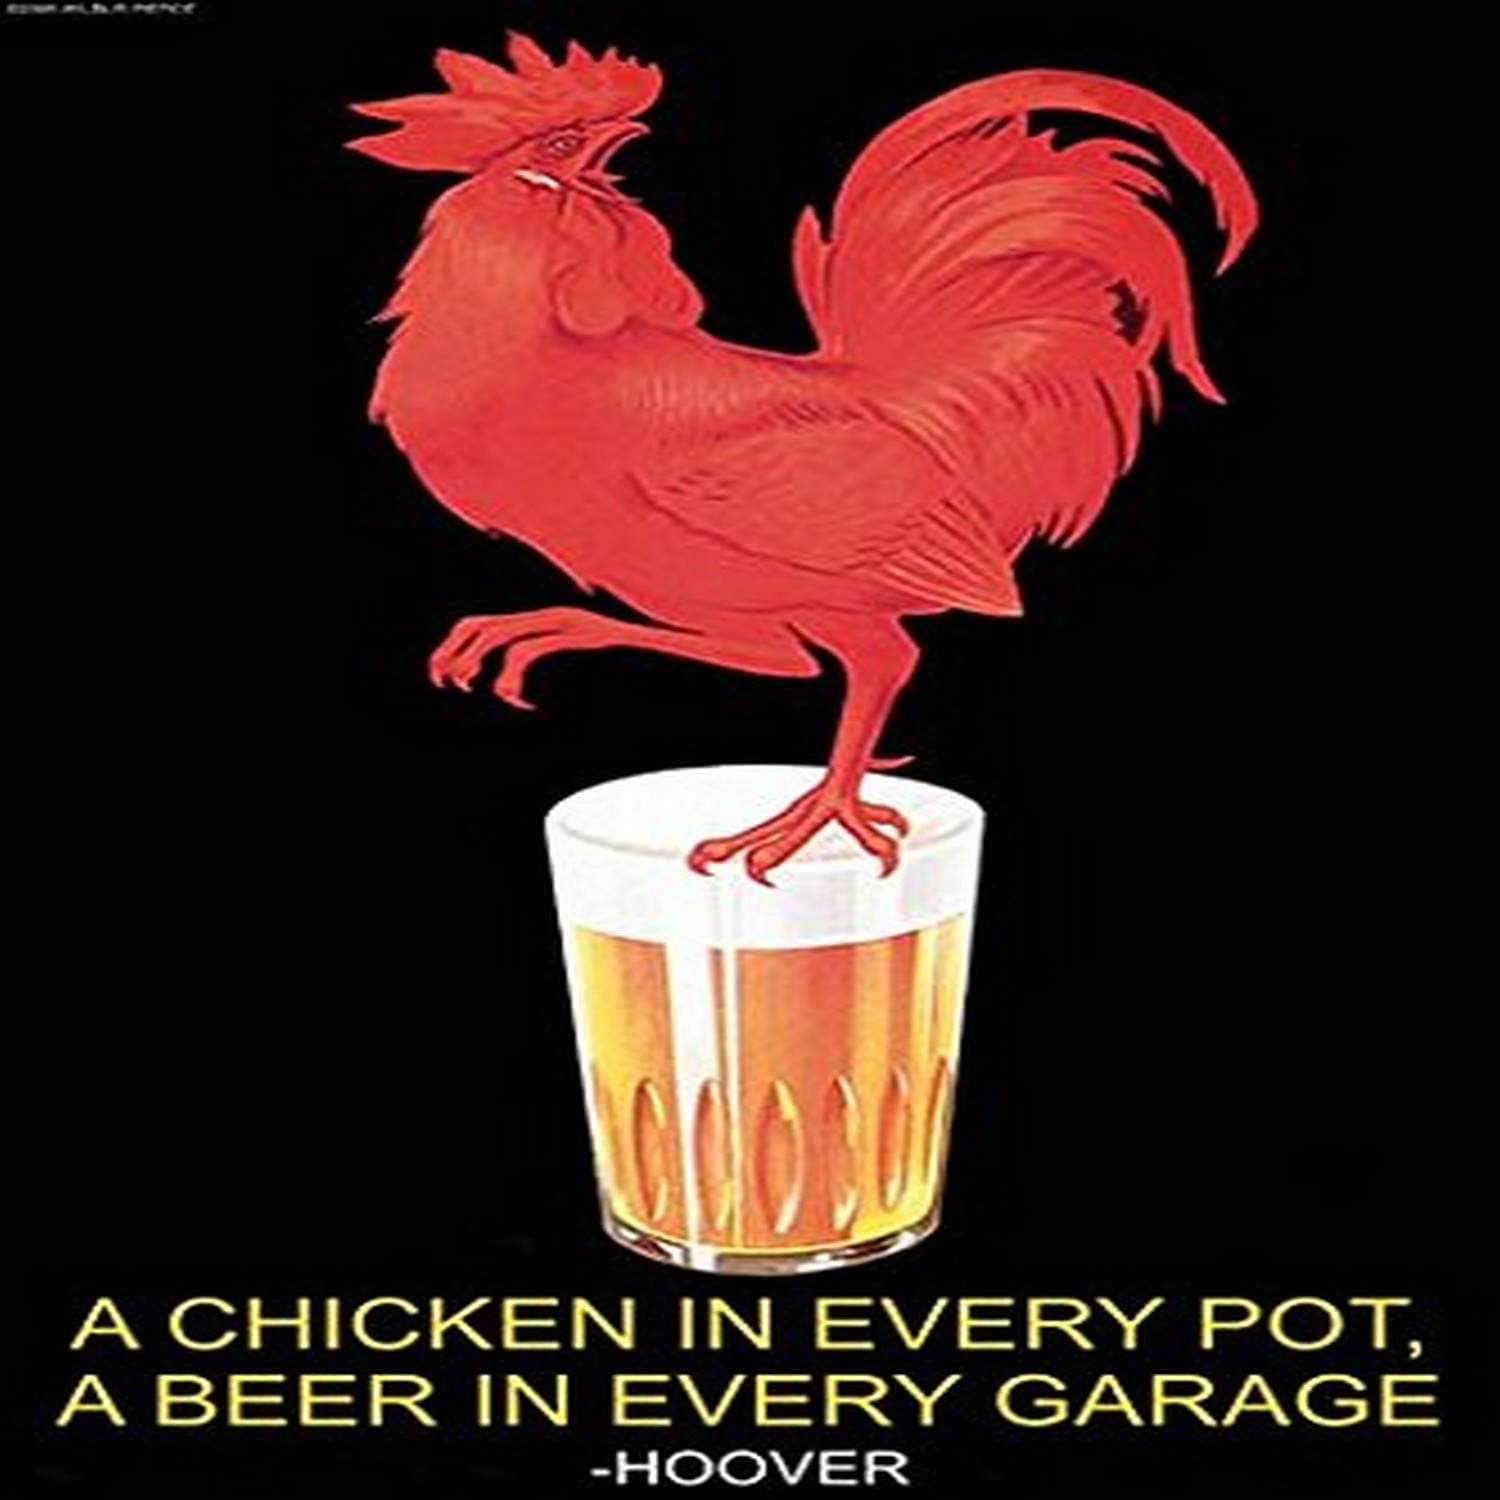 """Buyenlarge """"A Chicken in Every Pot, A Beer in Every Garage-Herbert Hoover Paper Poster, 18"""" x 27"""""""